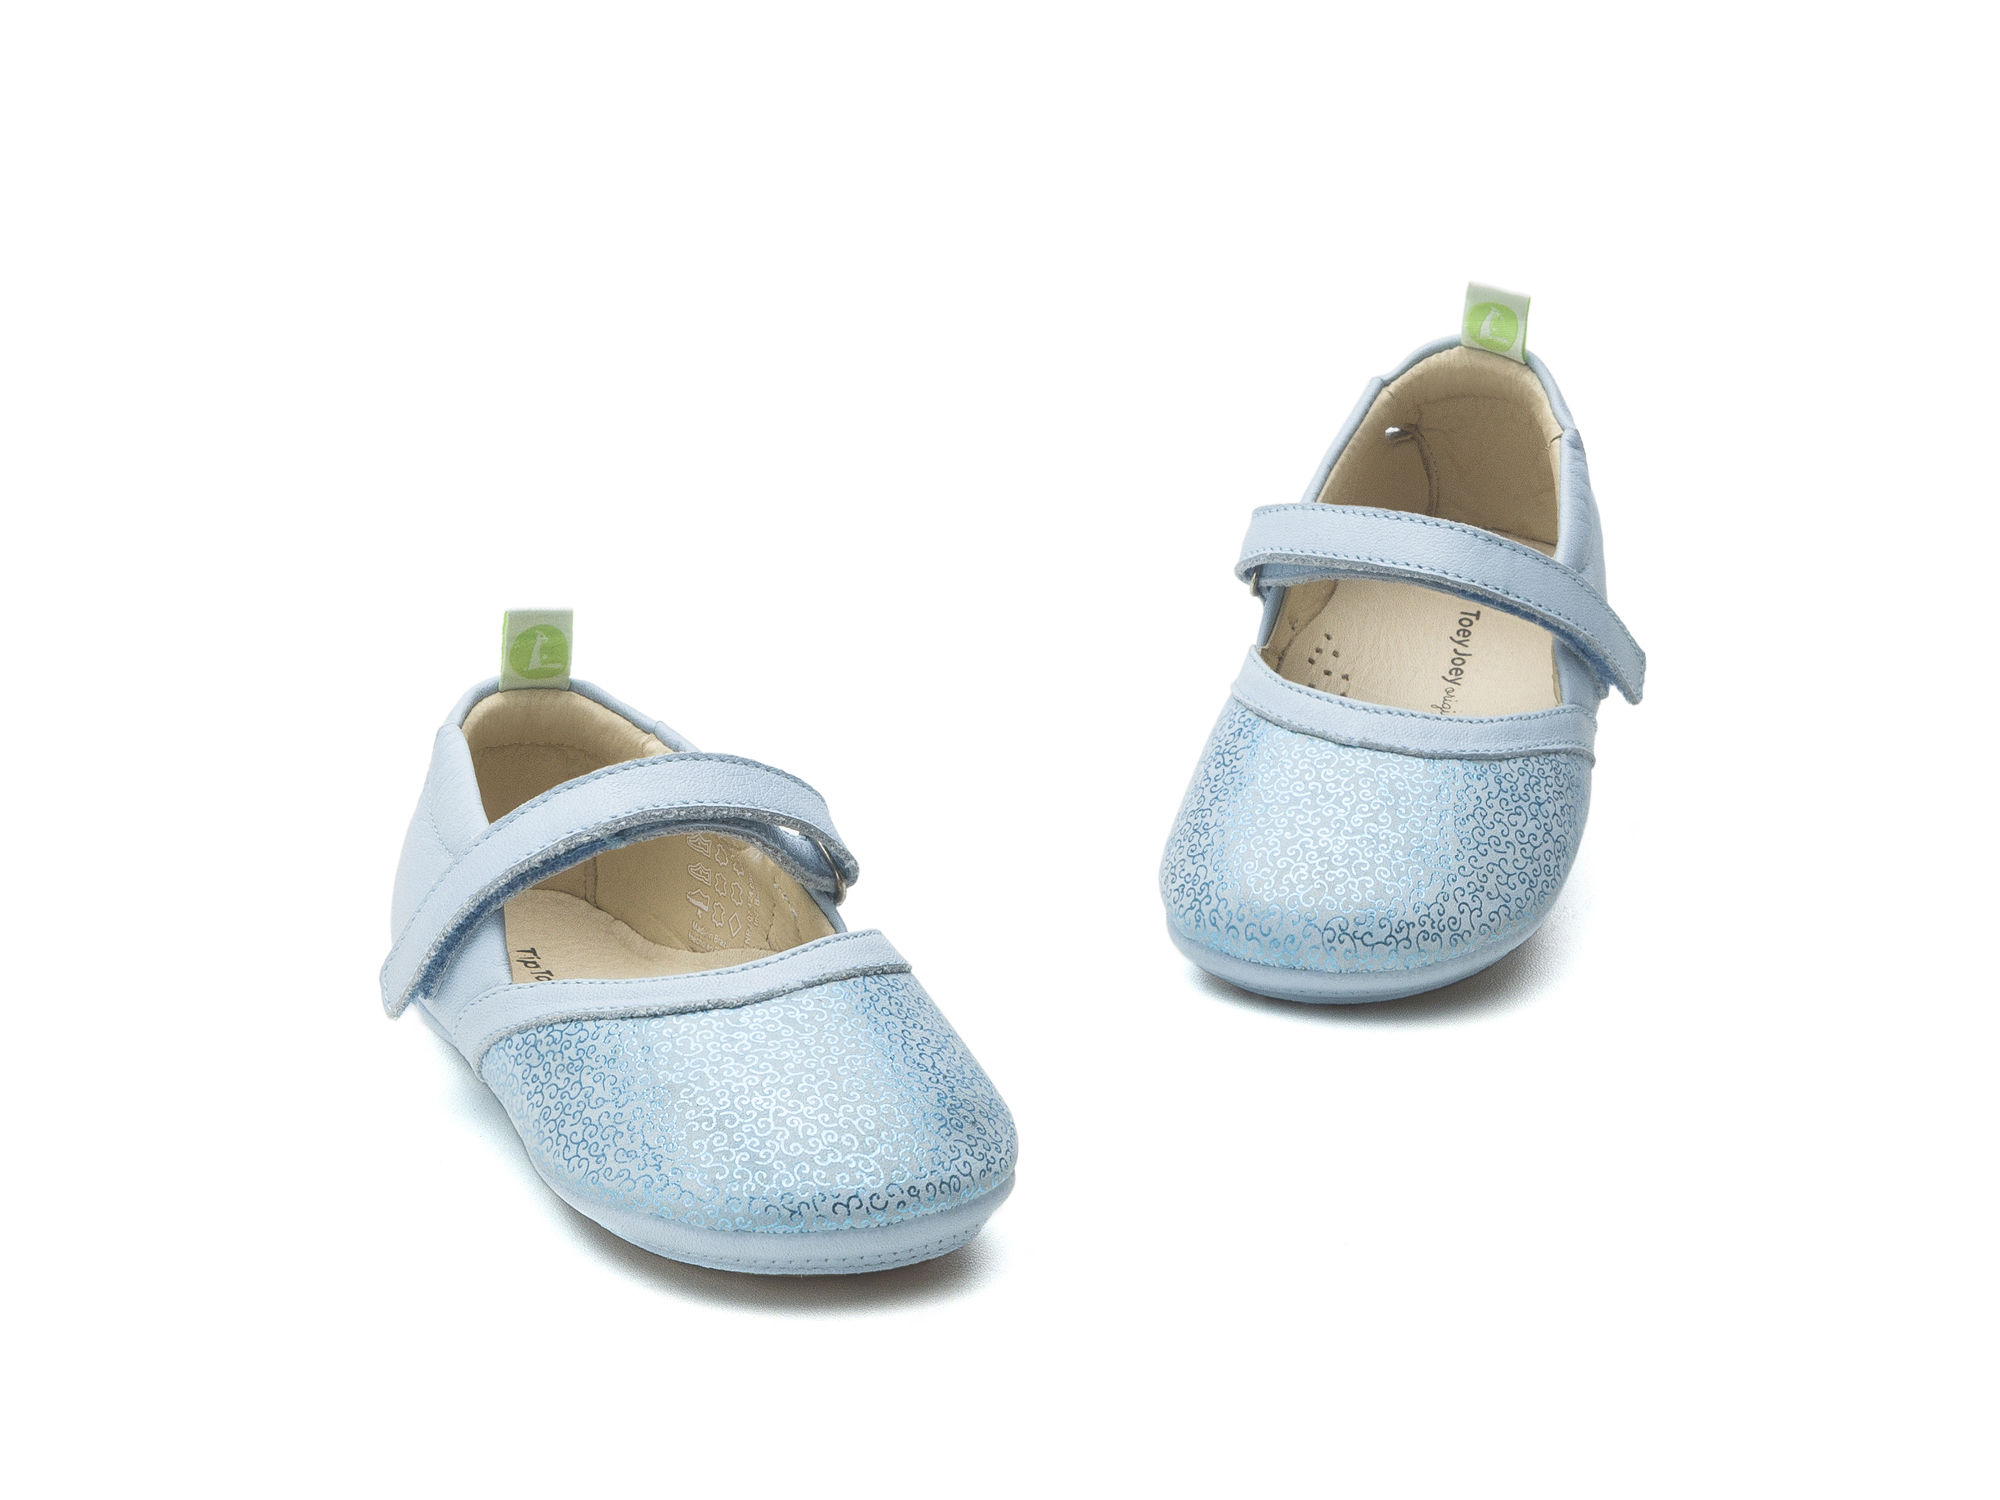 Boneca Cisny Baby Blue Lace/ Baby Blue Baby 0 à 2 anos - 2